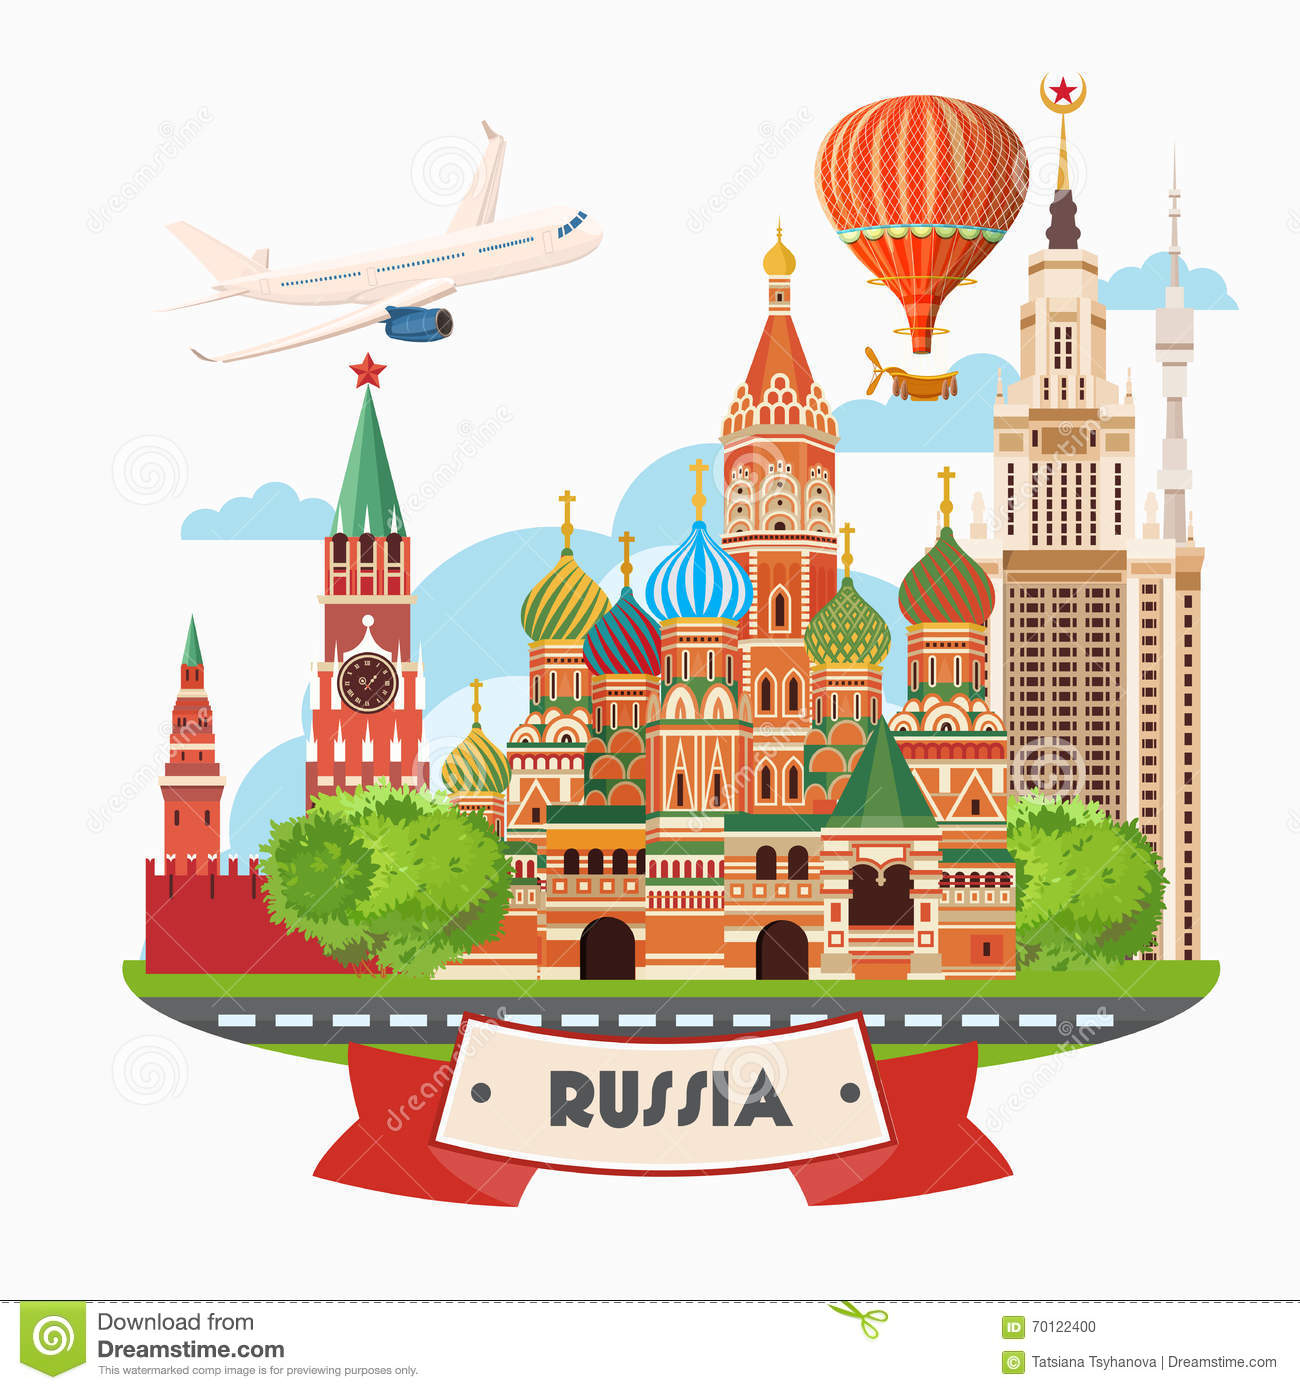 Russia Vector Banner. Russian Poster With Airplane. Travel